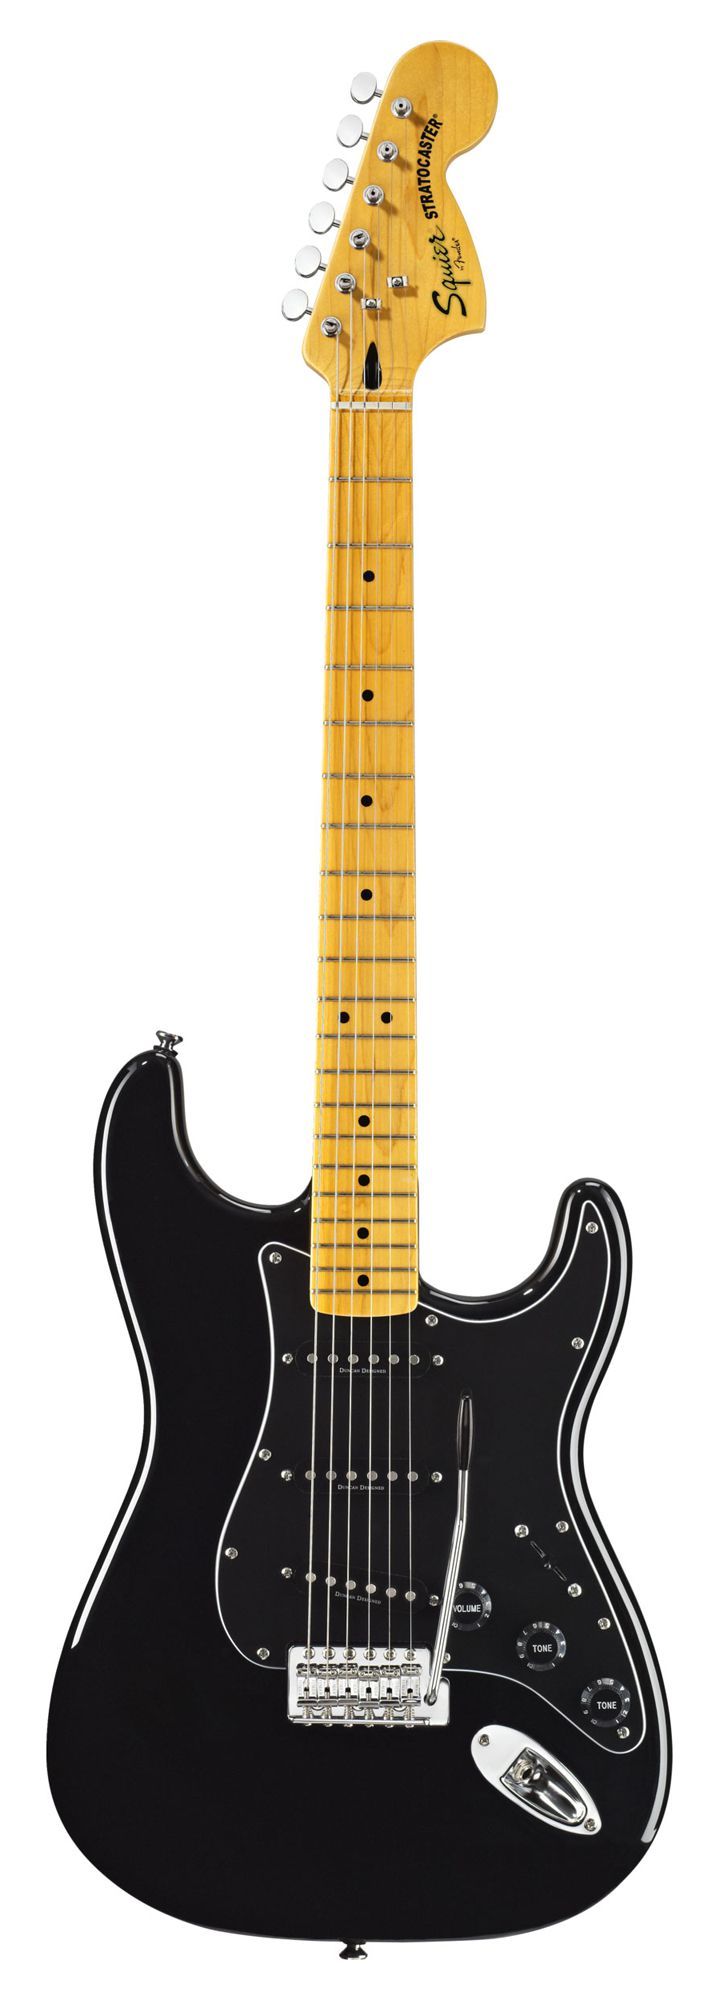 Squier Vintage Modified Stratocaster '70s - Black